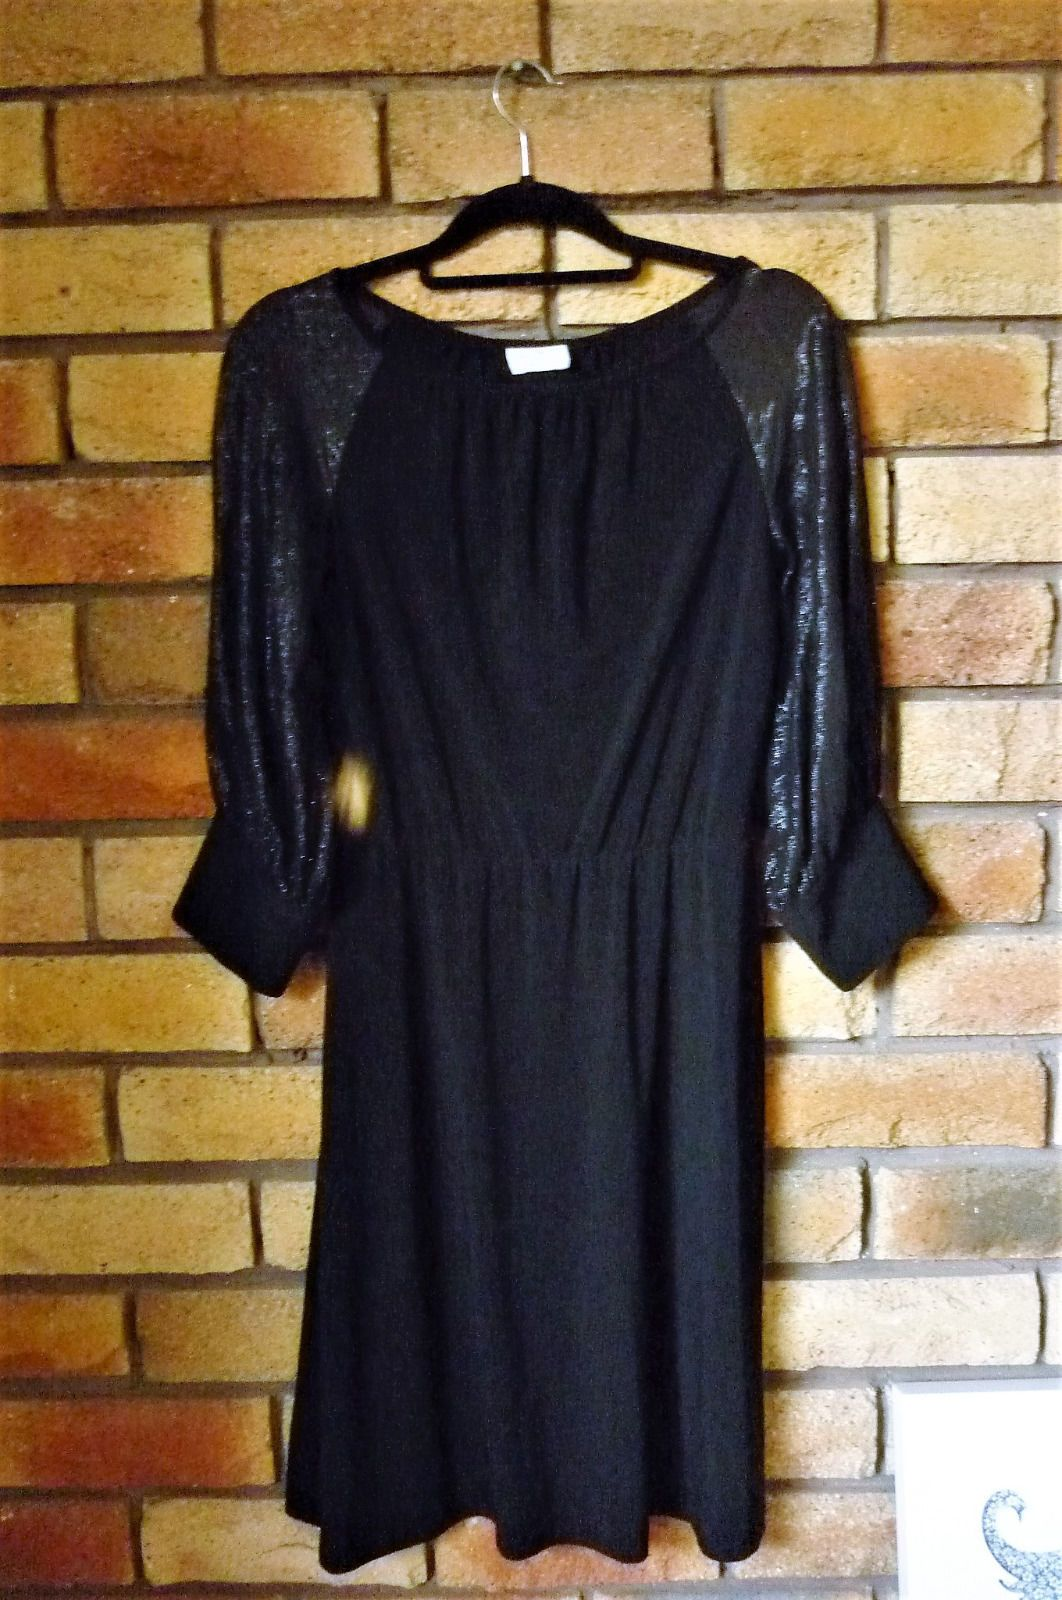 Elegant and simple black dress by leona edmiston has a wide slightly